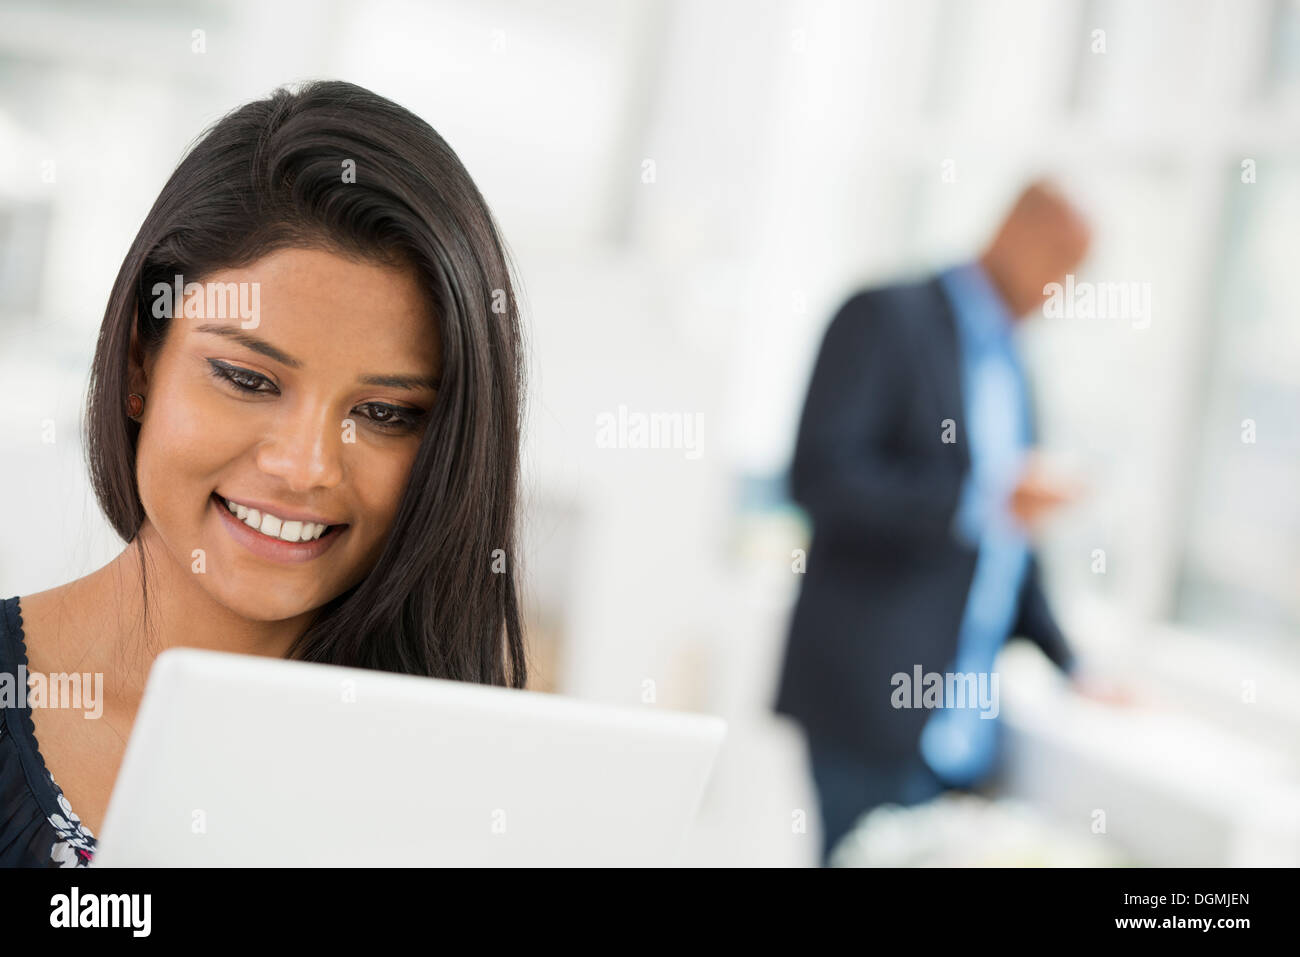 Business people. A woman using a digital tablet. - Stock Image